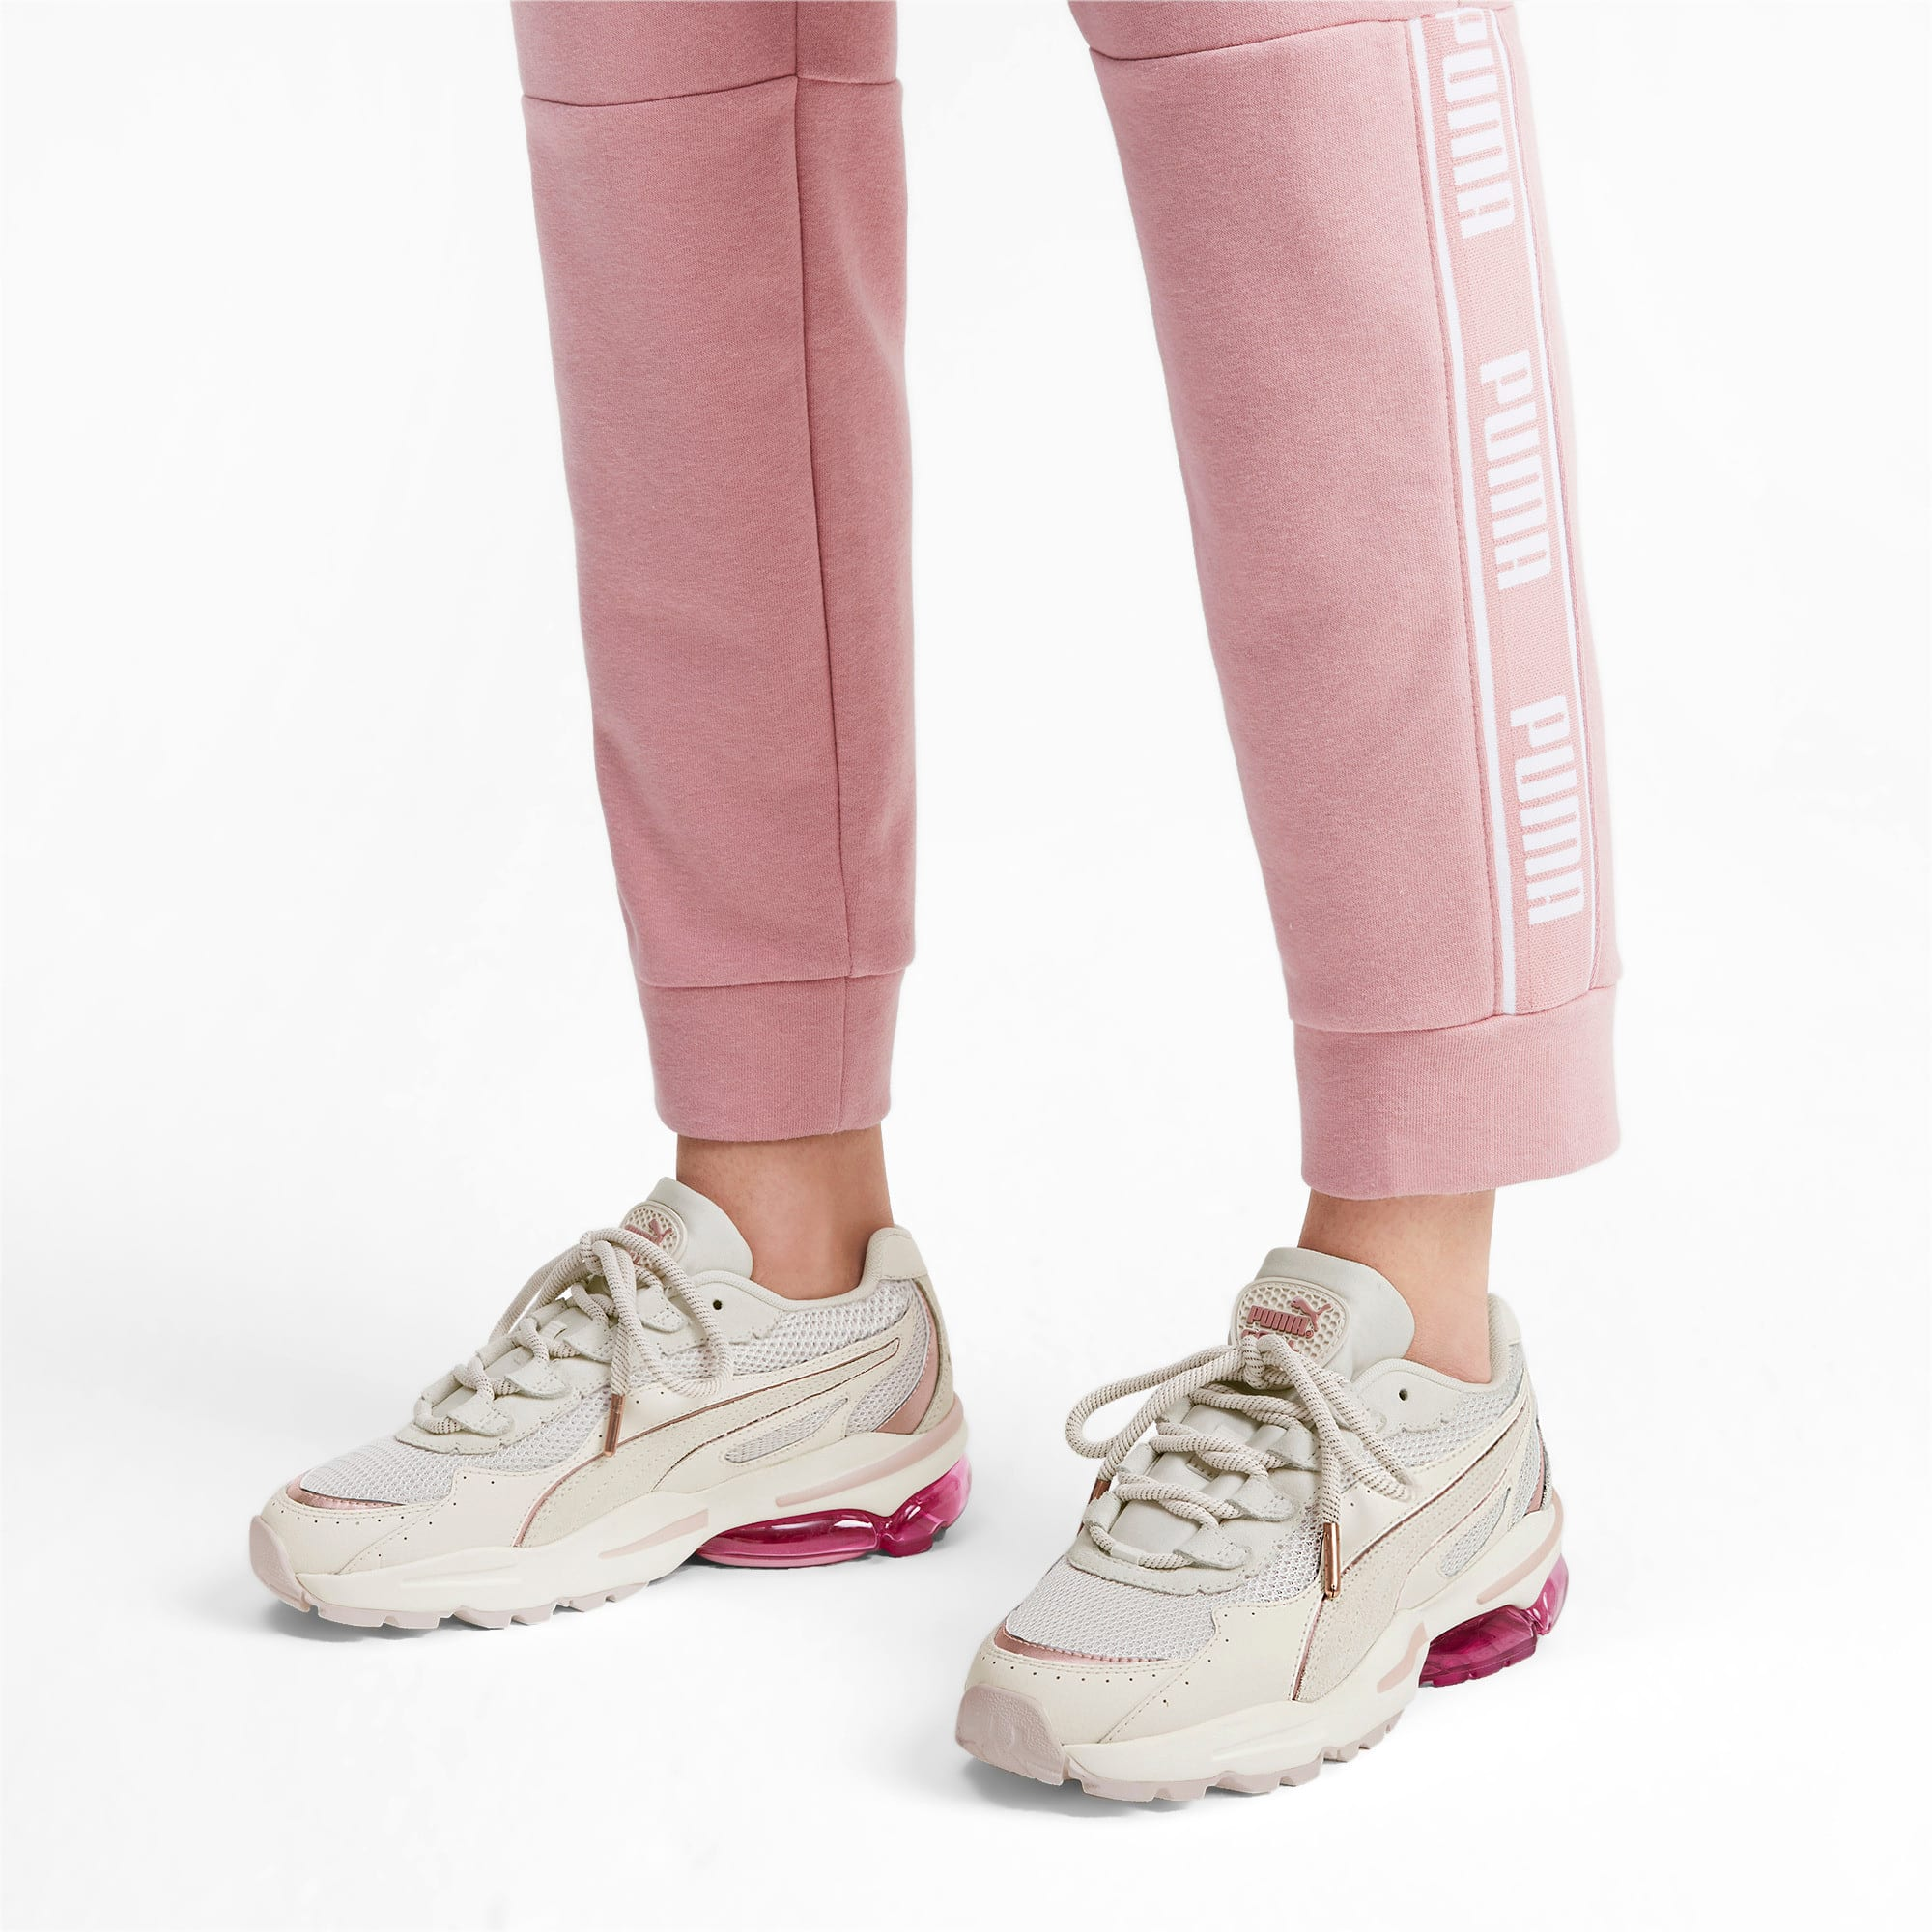 Thumbnail 2 of CELL Stellar Soft Women's Sneakers, Pastel Parchment-Rose Gold, medium